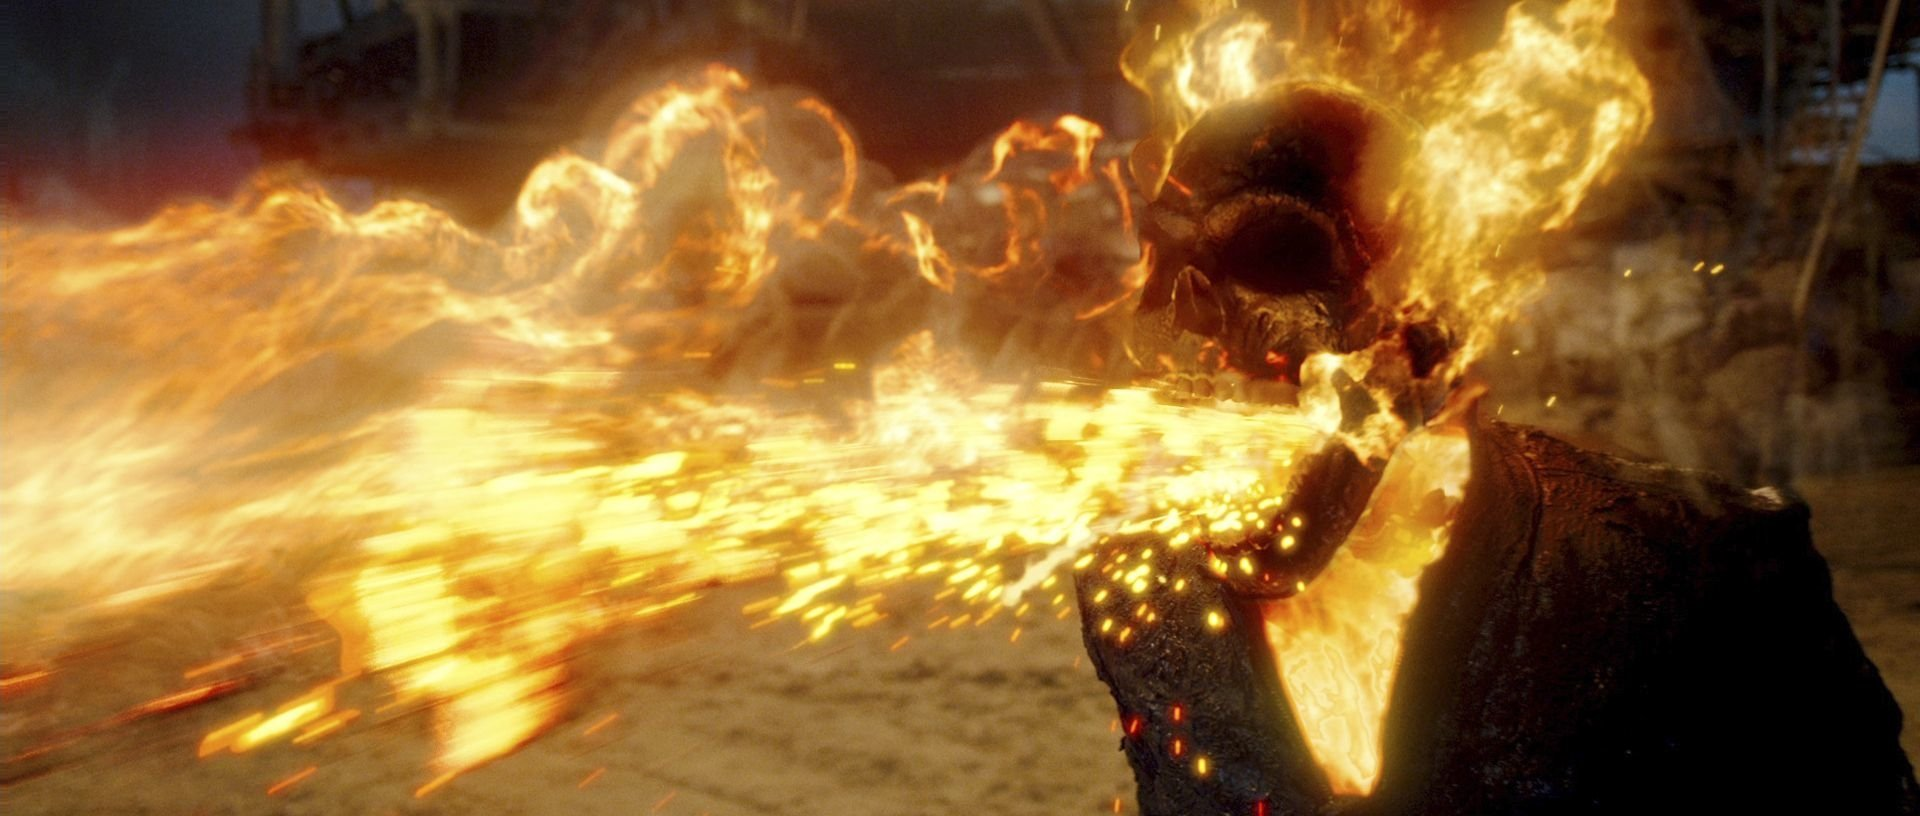 Ghost Rider Spirit Of Vengeance Wallpaper And Background Image